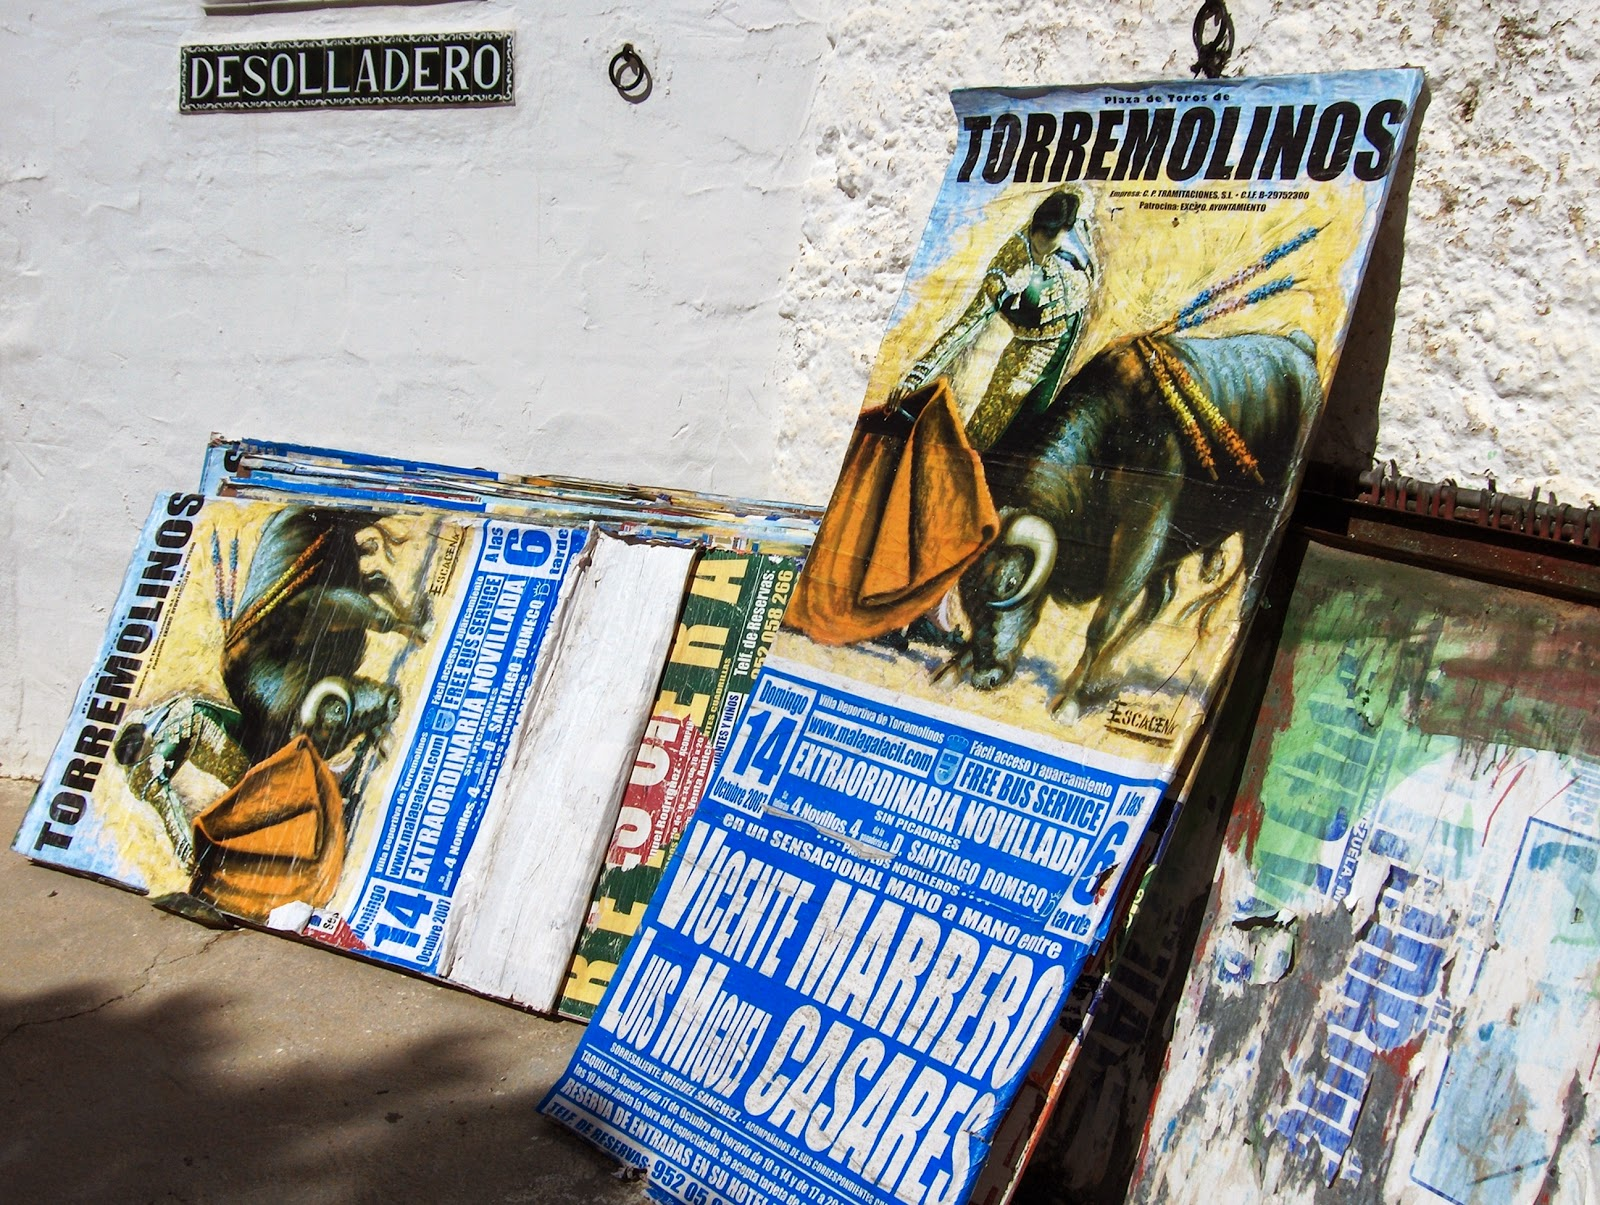 Bull fighting posters